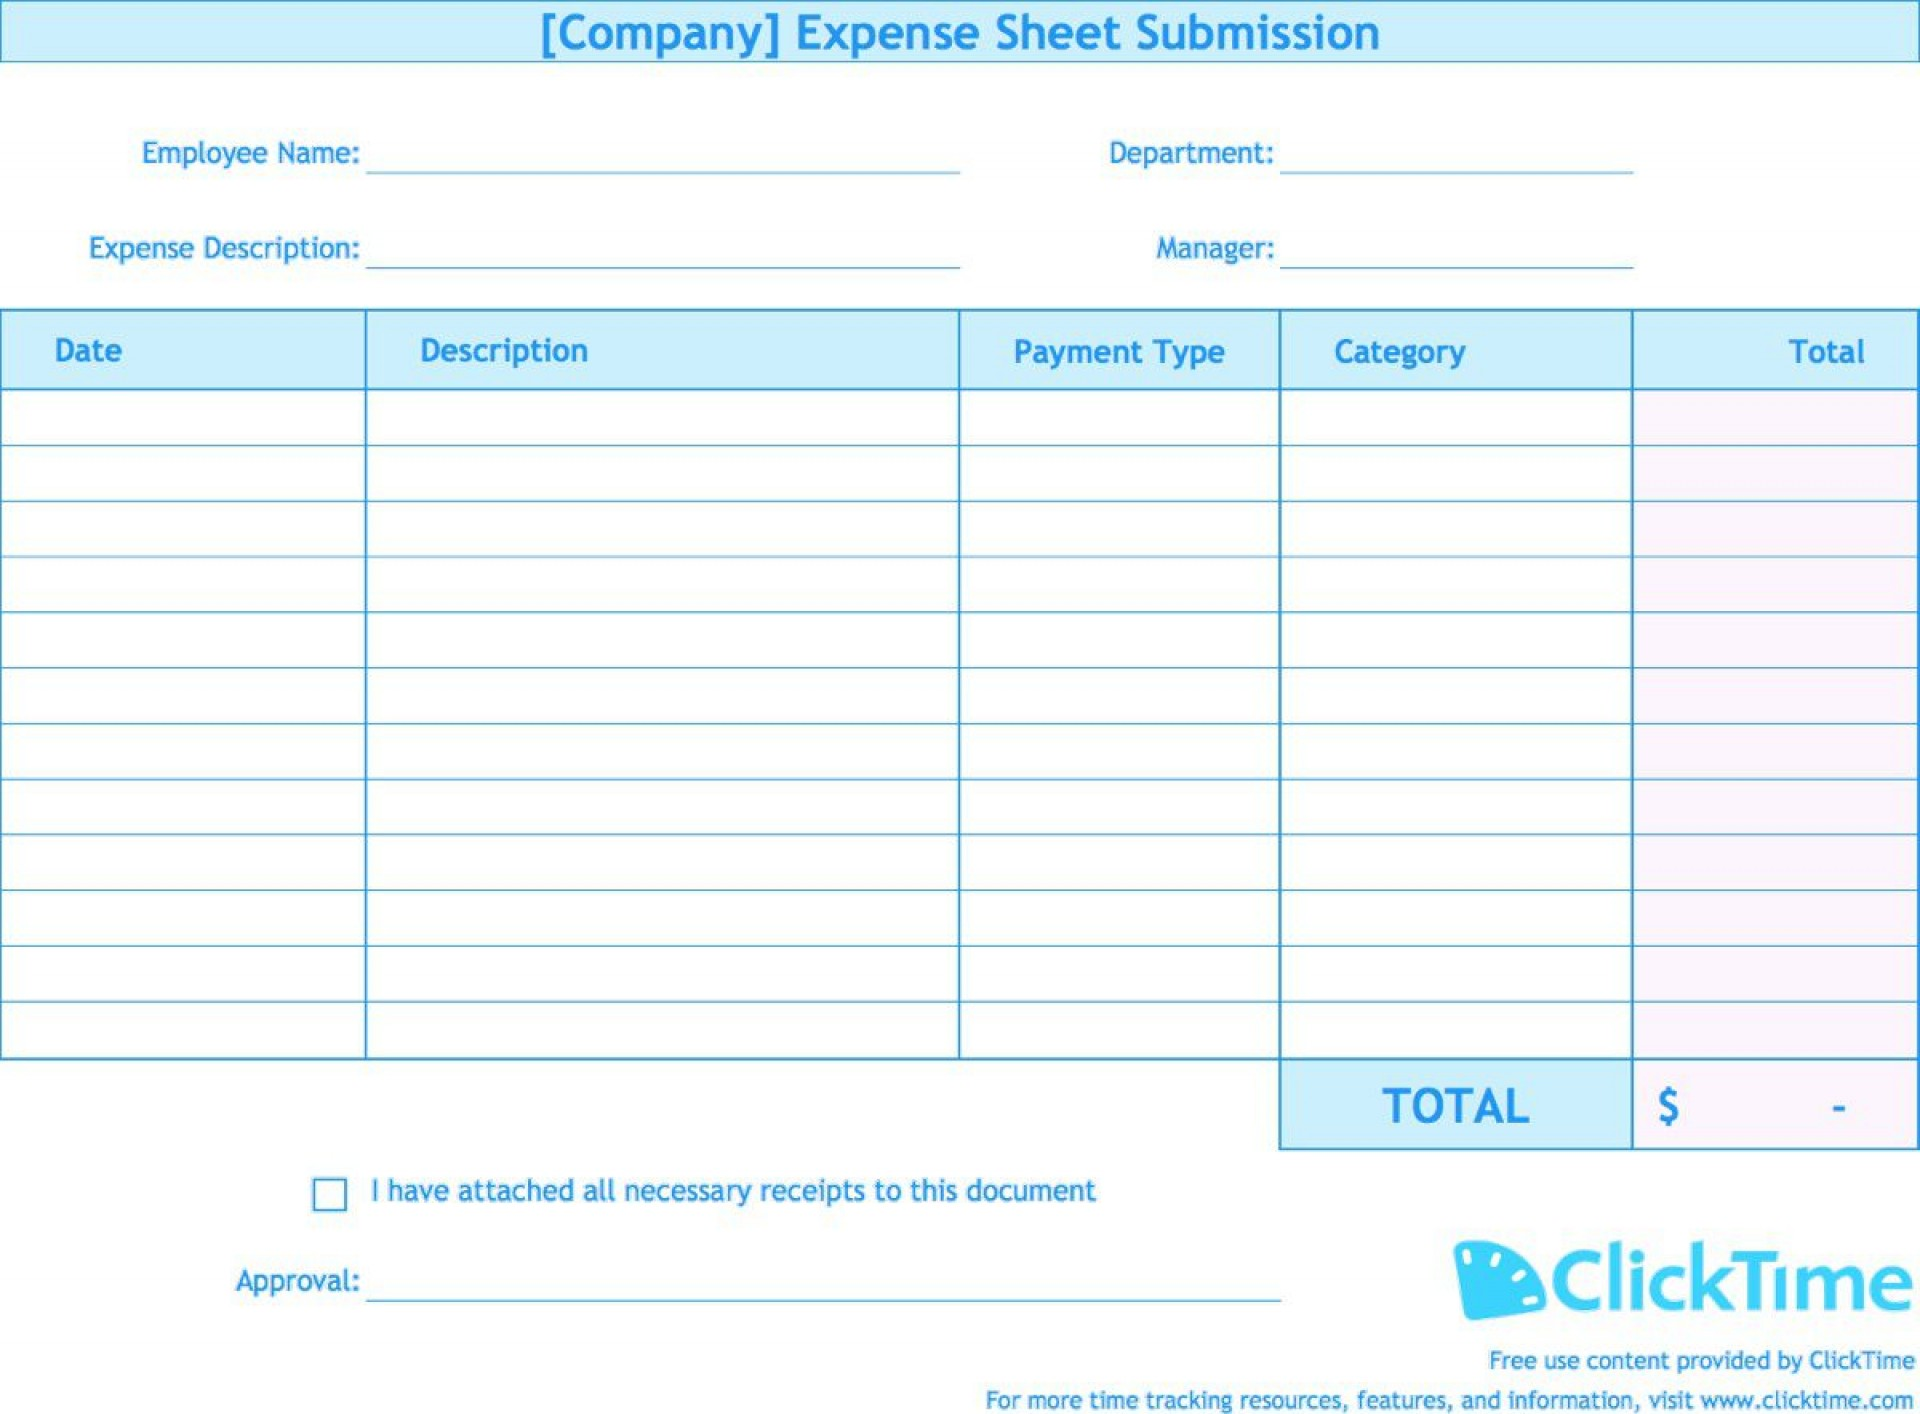 002 Archaicawful Simple Expense Report Template Highest Quality  Example Free Form1920